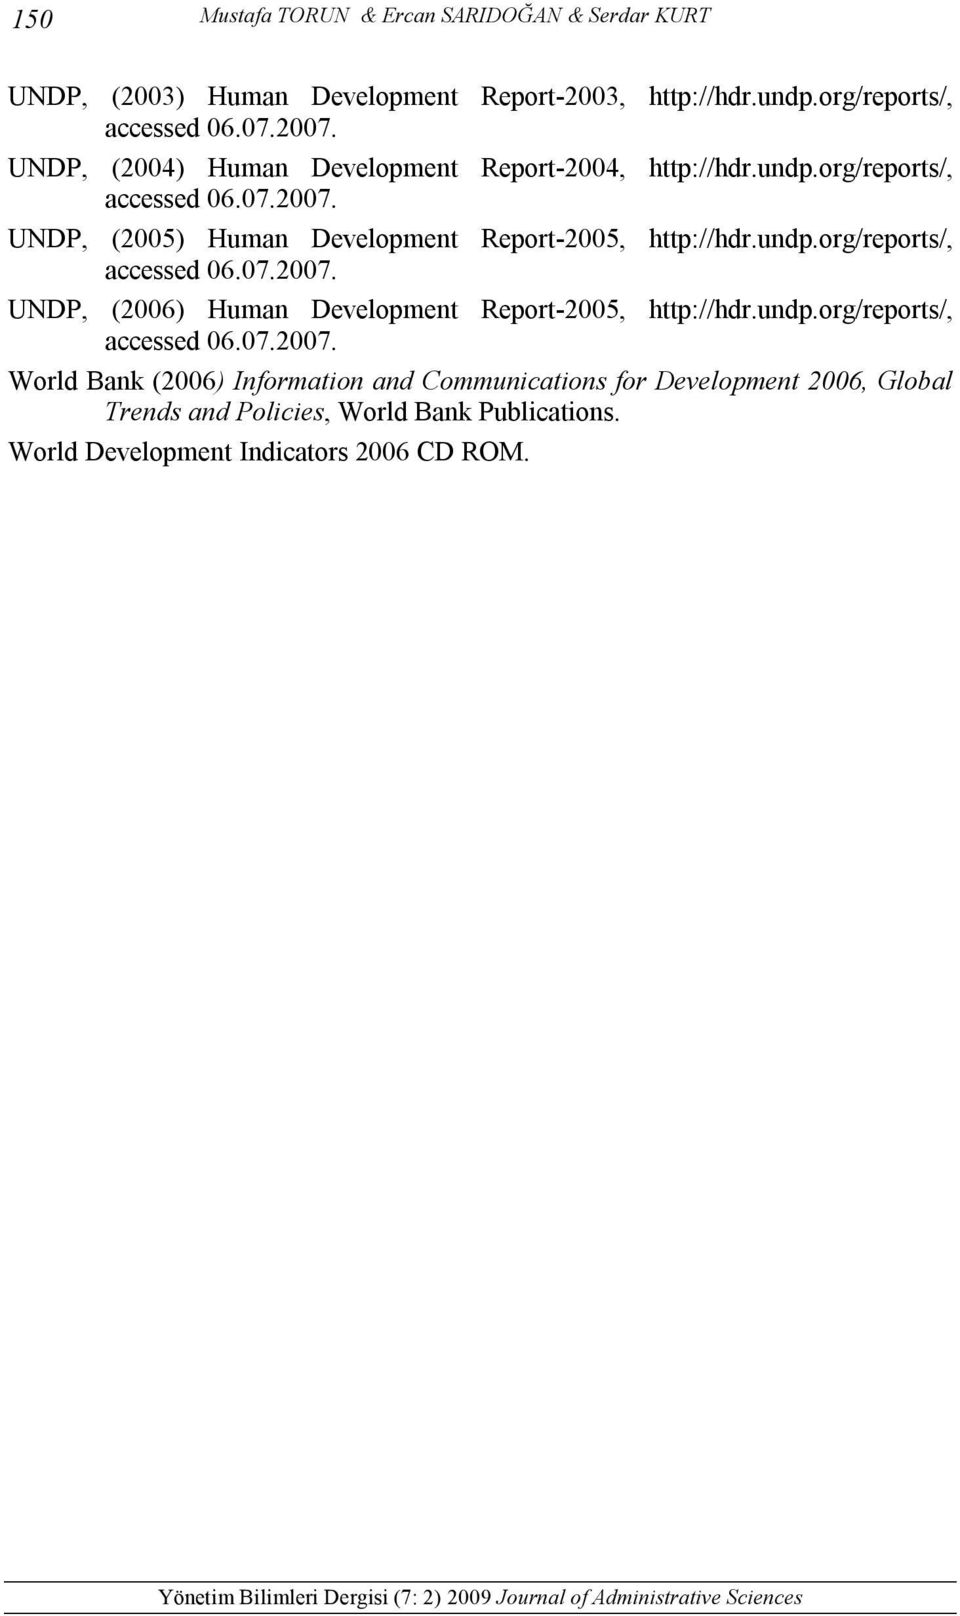 UNDP, (2005) Human Development Report-2005, http://hdr.undp.org/reports/, accessed 06.07.2007.